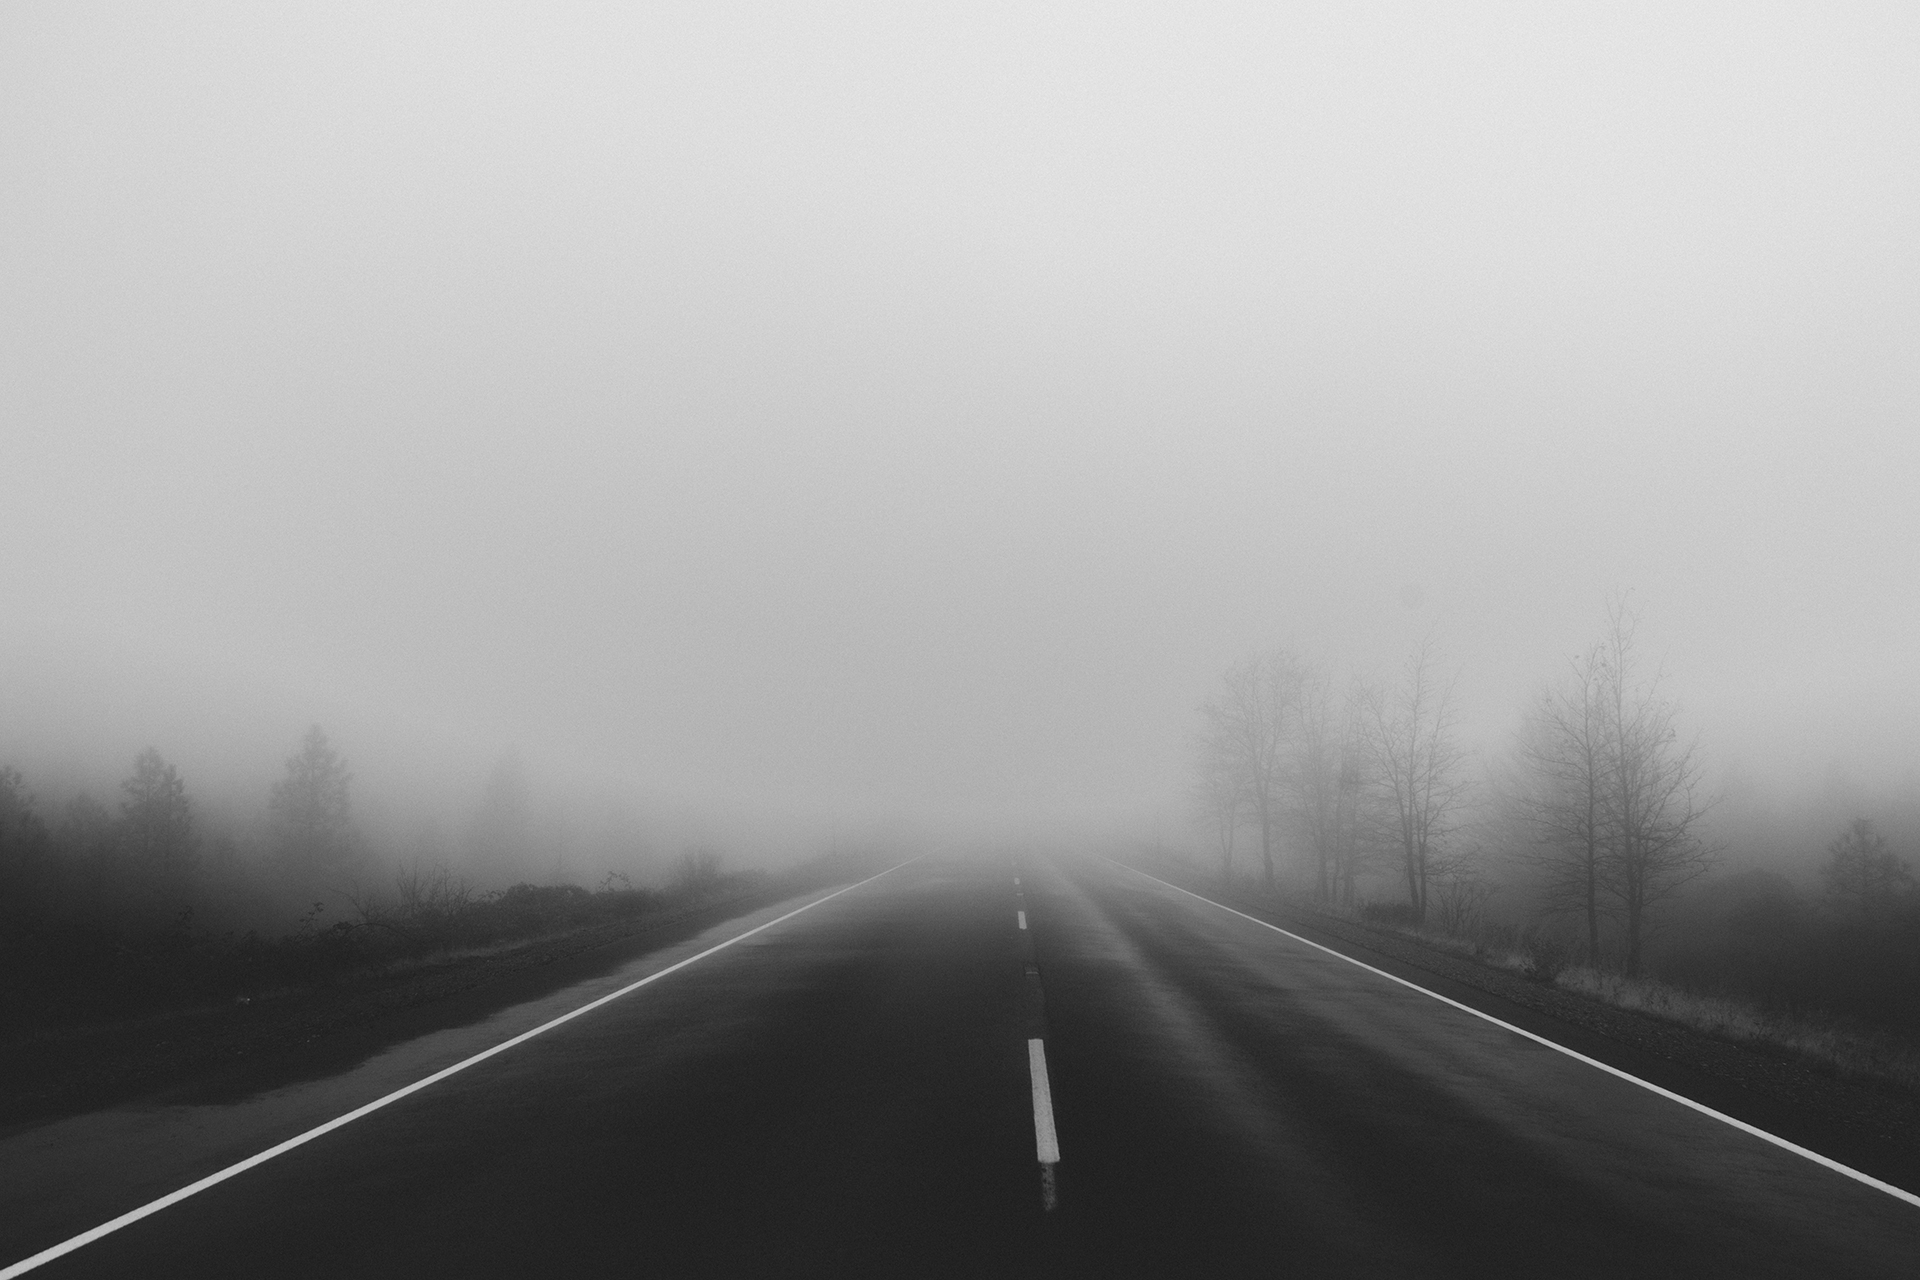 road-fog-foggy-mist